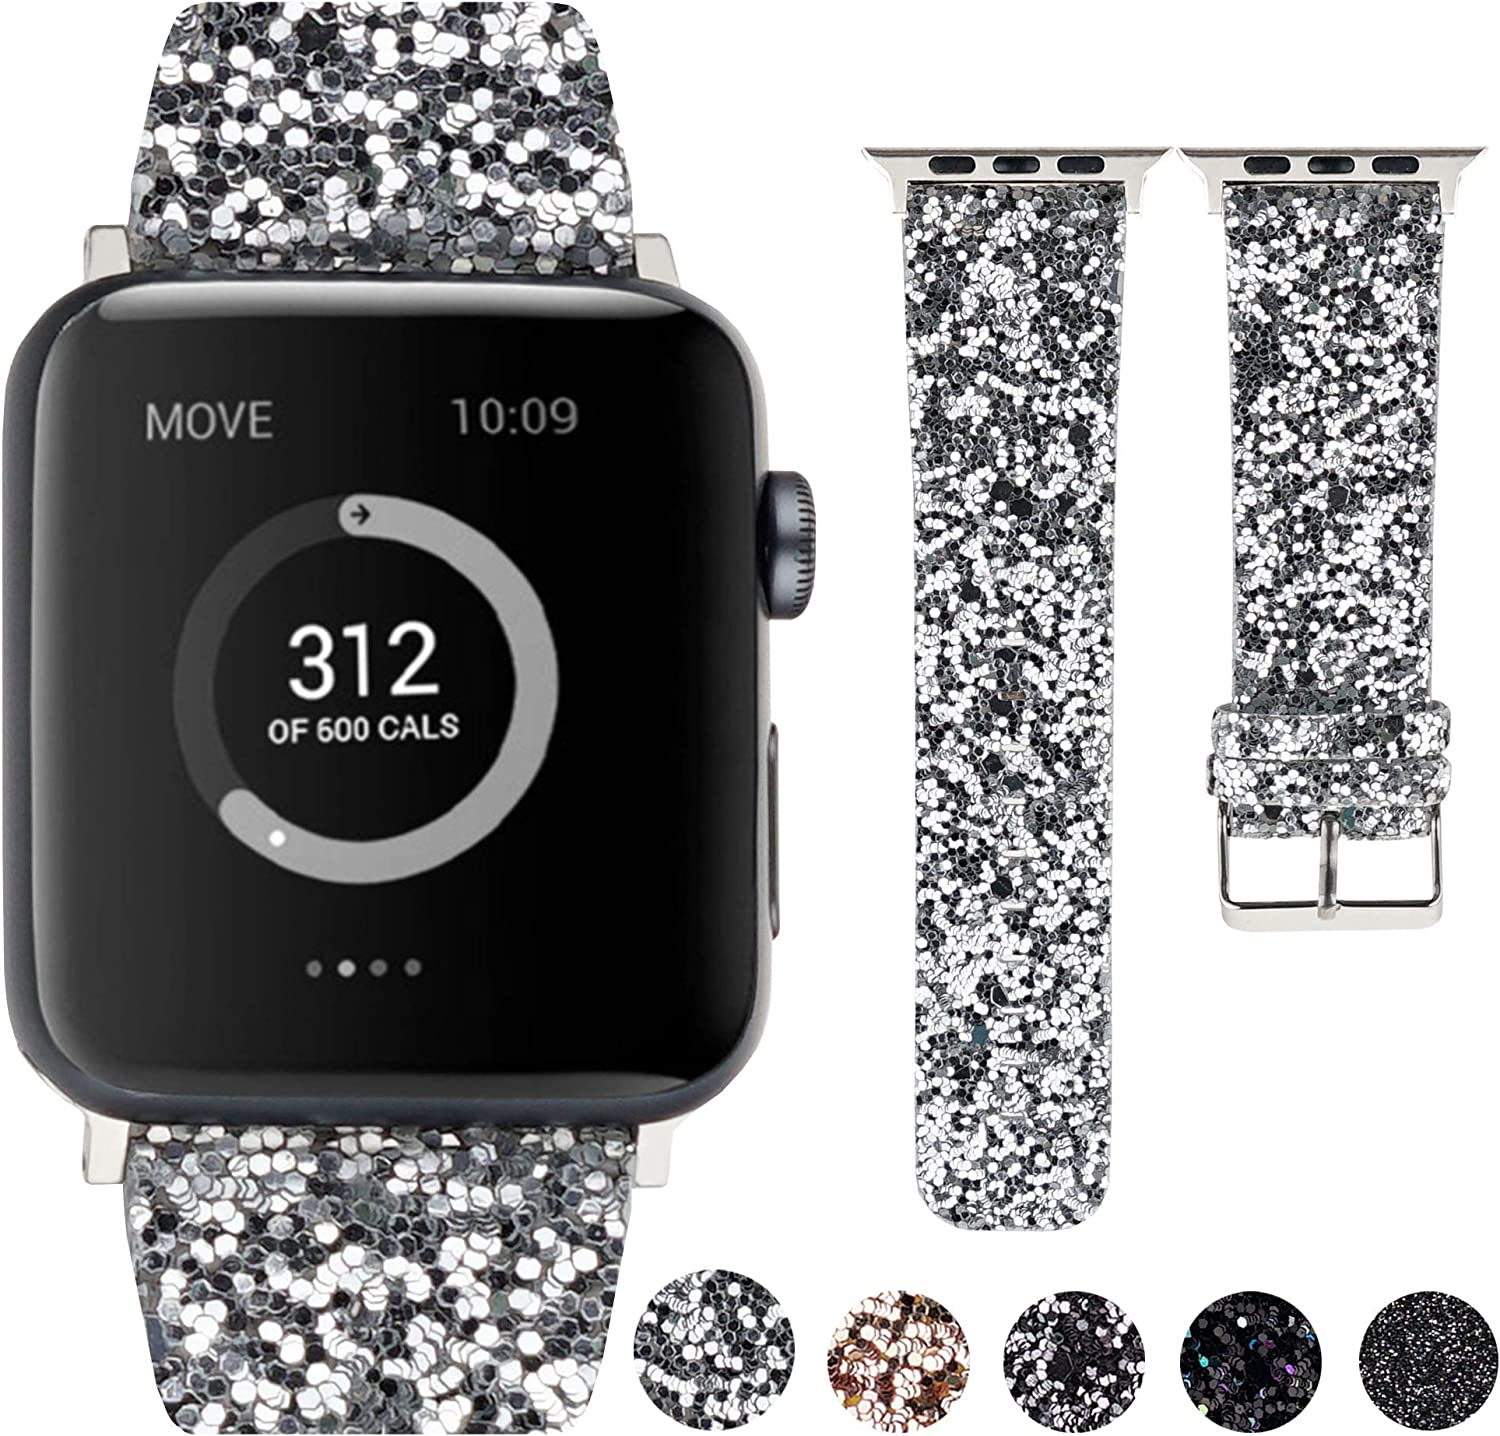 Moonooda Glitter Watch Band Compatible with Apple Watch 38mm 40mm 42mm 44mm, Women Men Wristband Replacement for iWatch, Bling Strap Compatible with Series 5 4 3 2 1